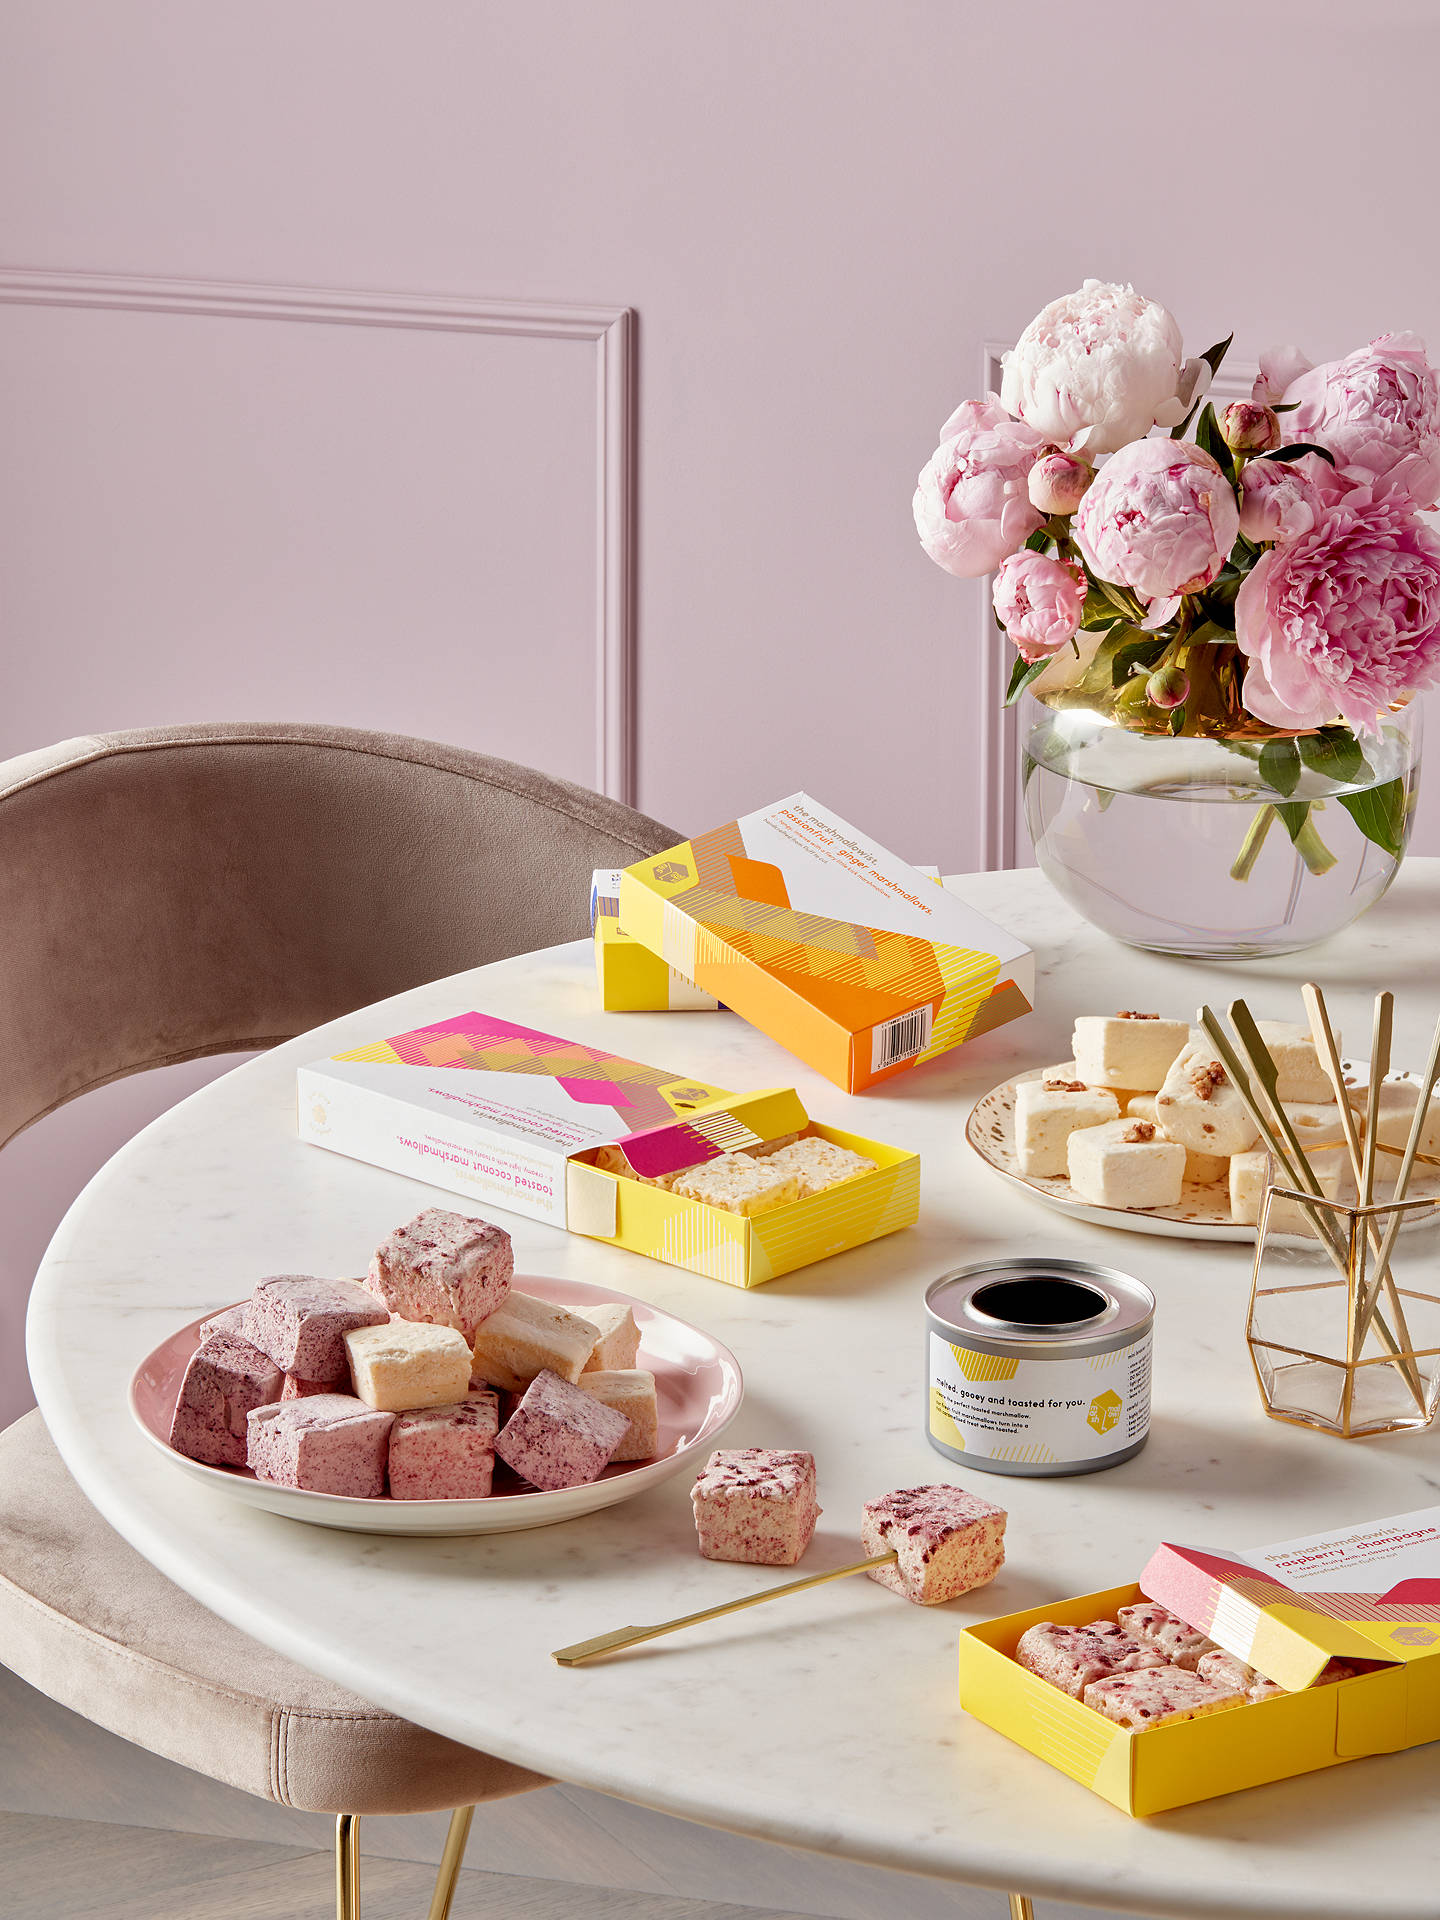 Buy The Marshmallowist Passionfruit & Ginger Marshmallows, 120g Online at johnlewis.com